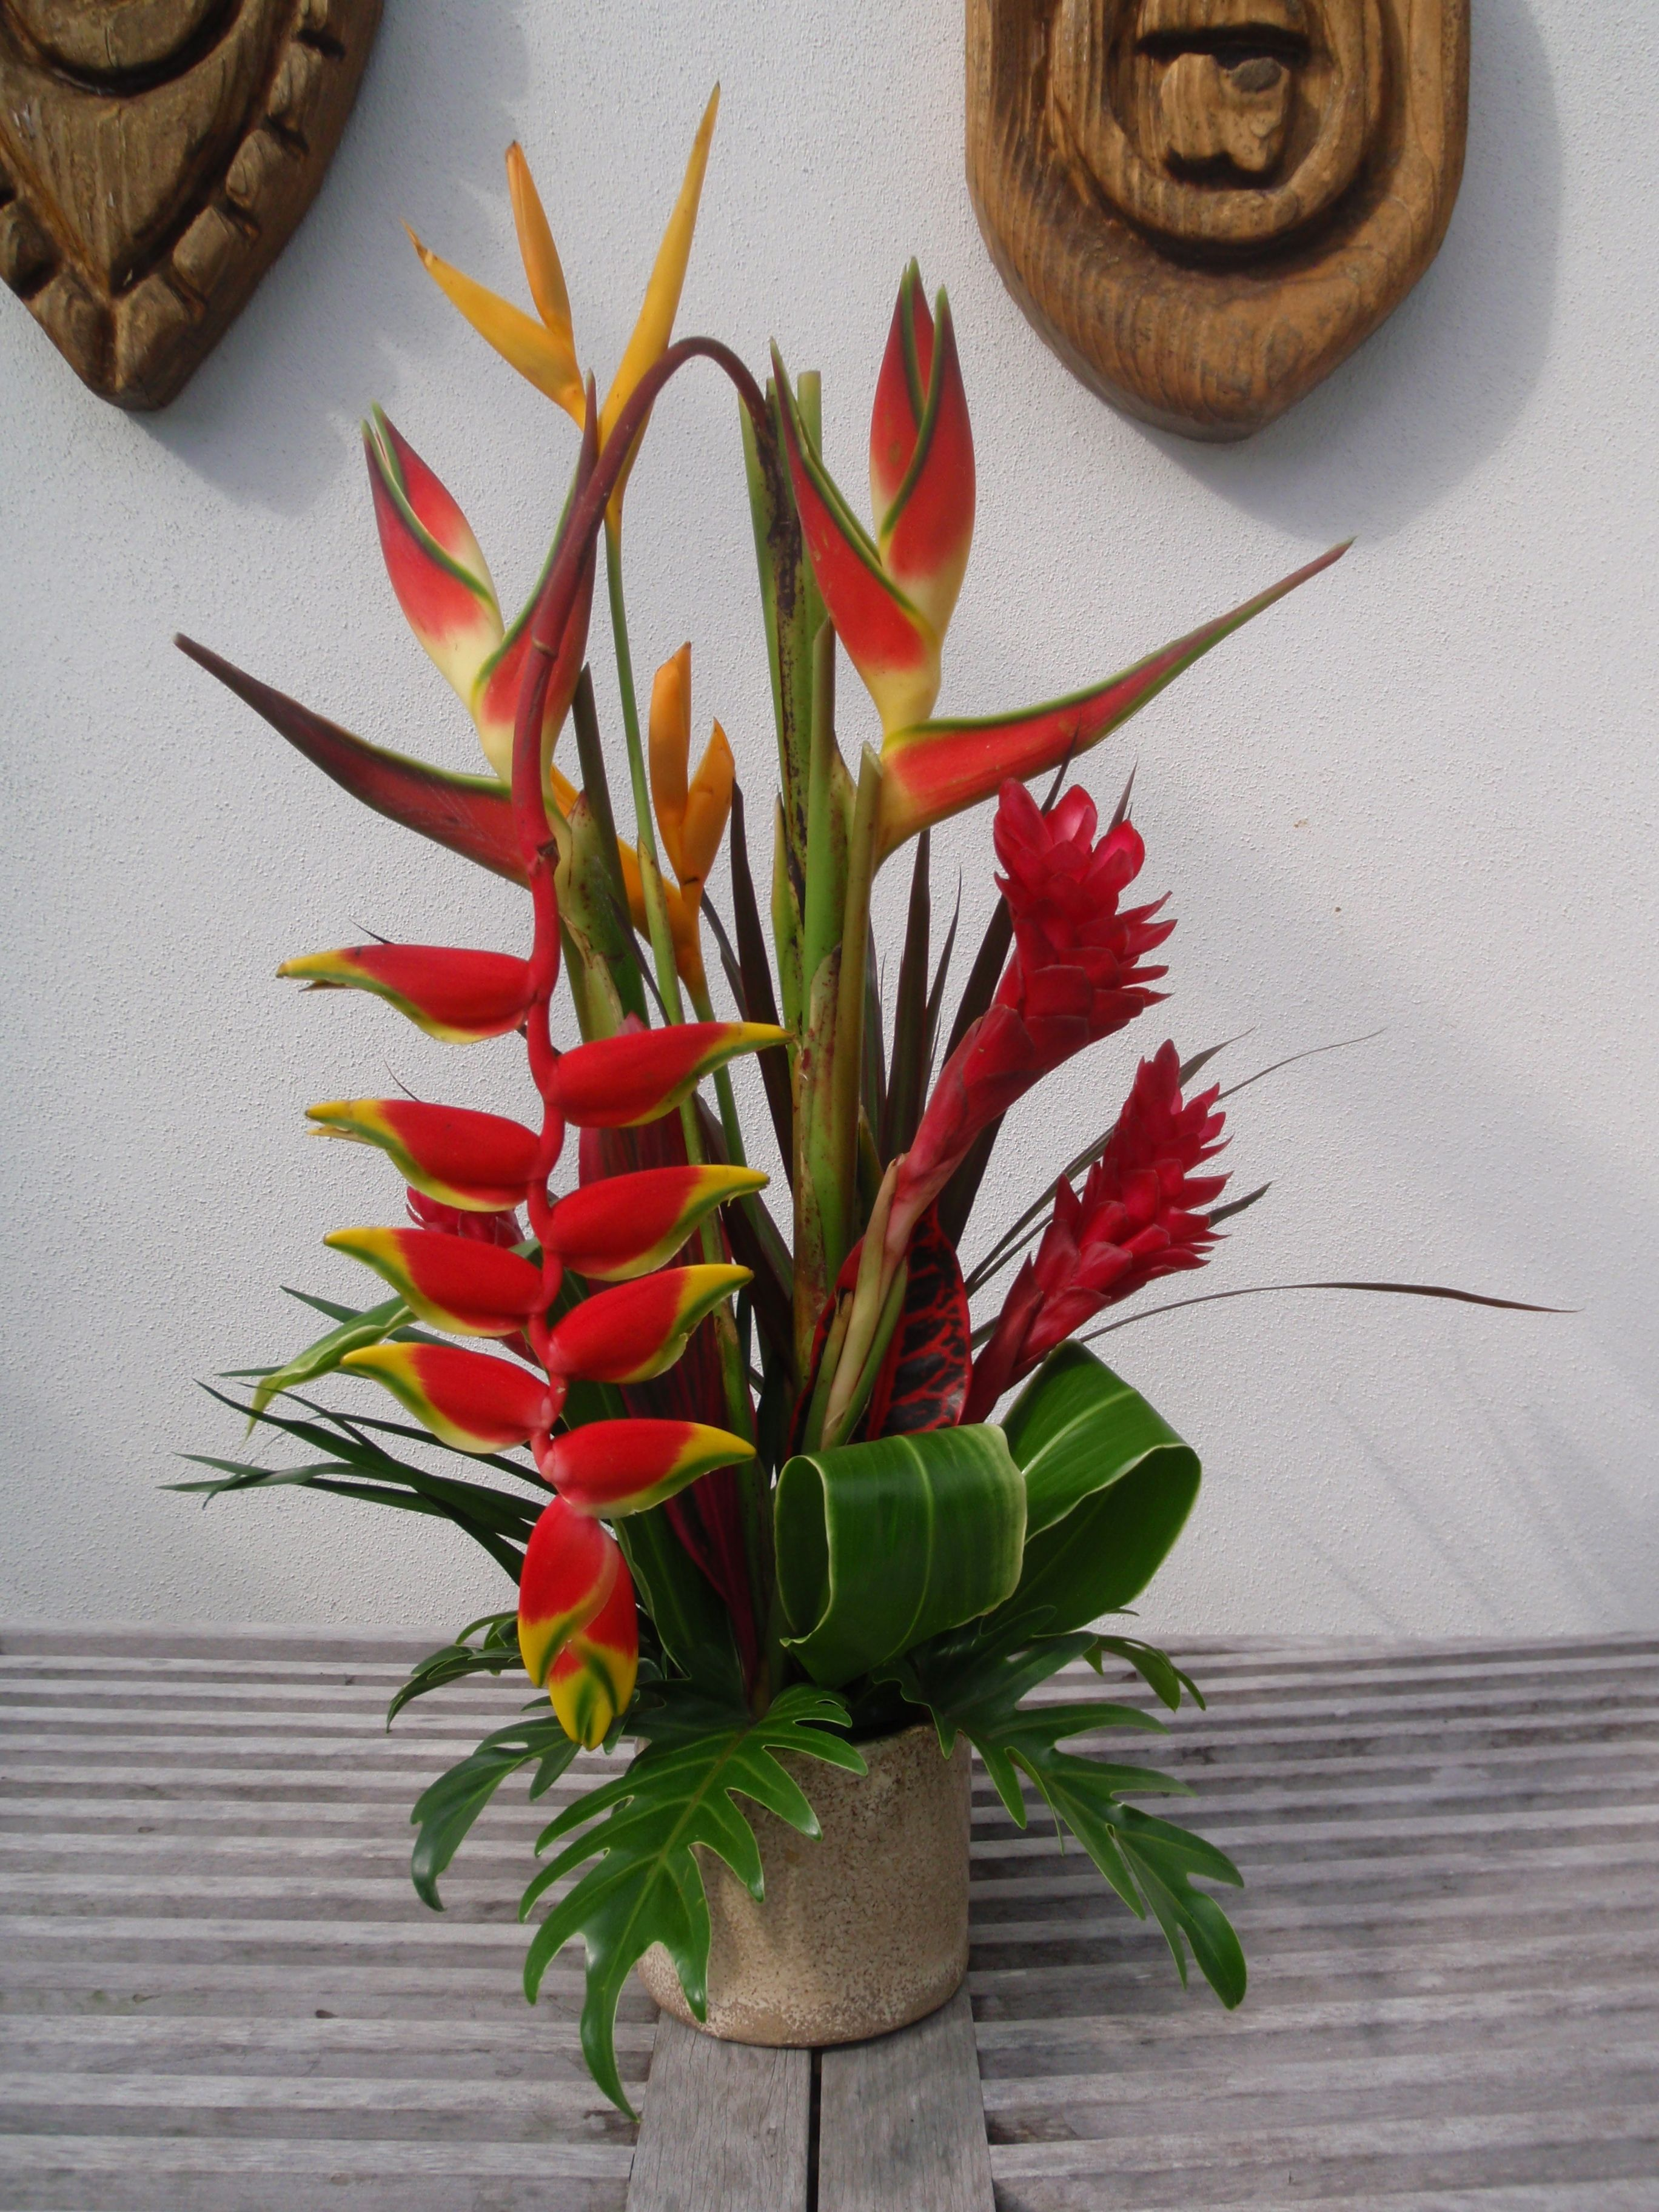 Tropical Flower Arrangements | Couple Tropical Flower Arrangements ;)